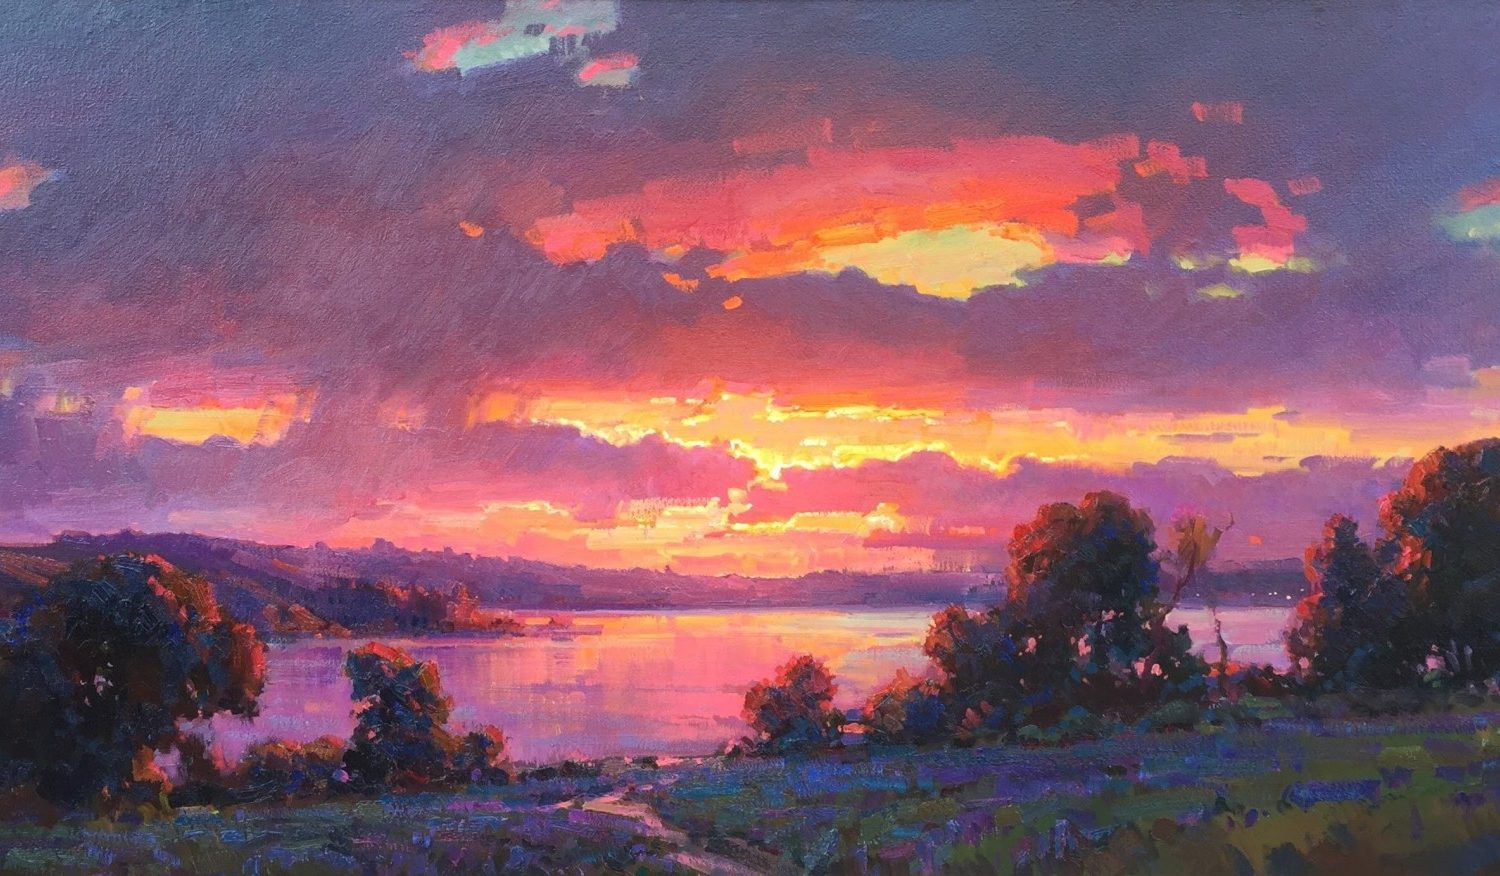 """Sunset by the Lake - 35"""" x 75"""" - Oil on Canvas - Ovanes Berberian"""